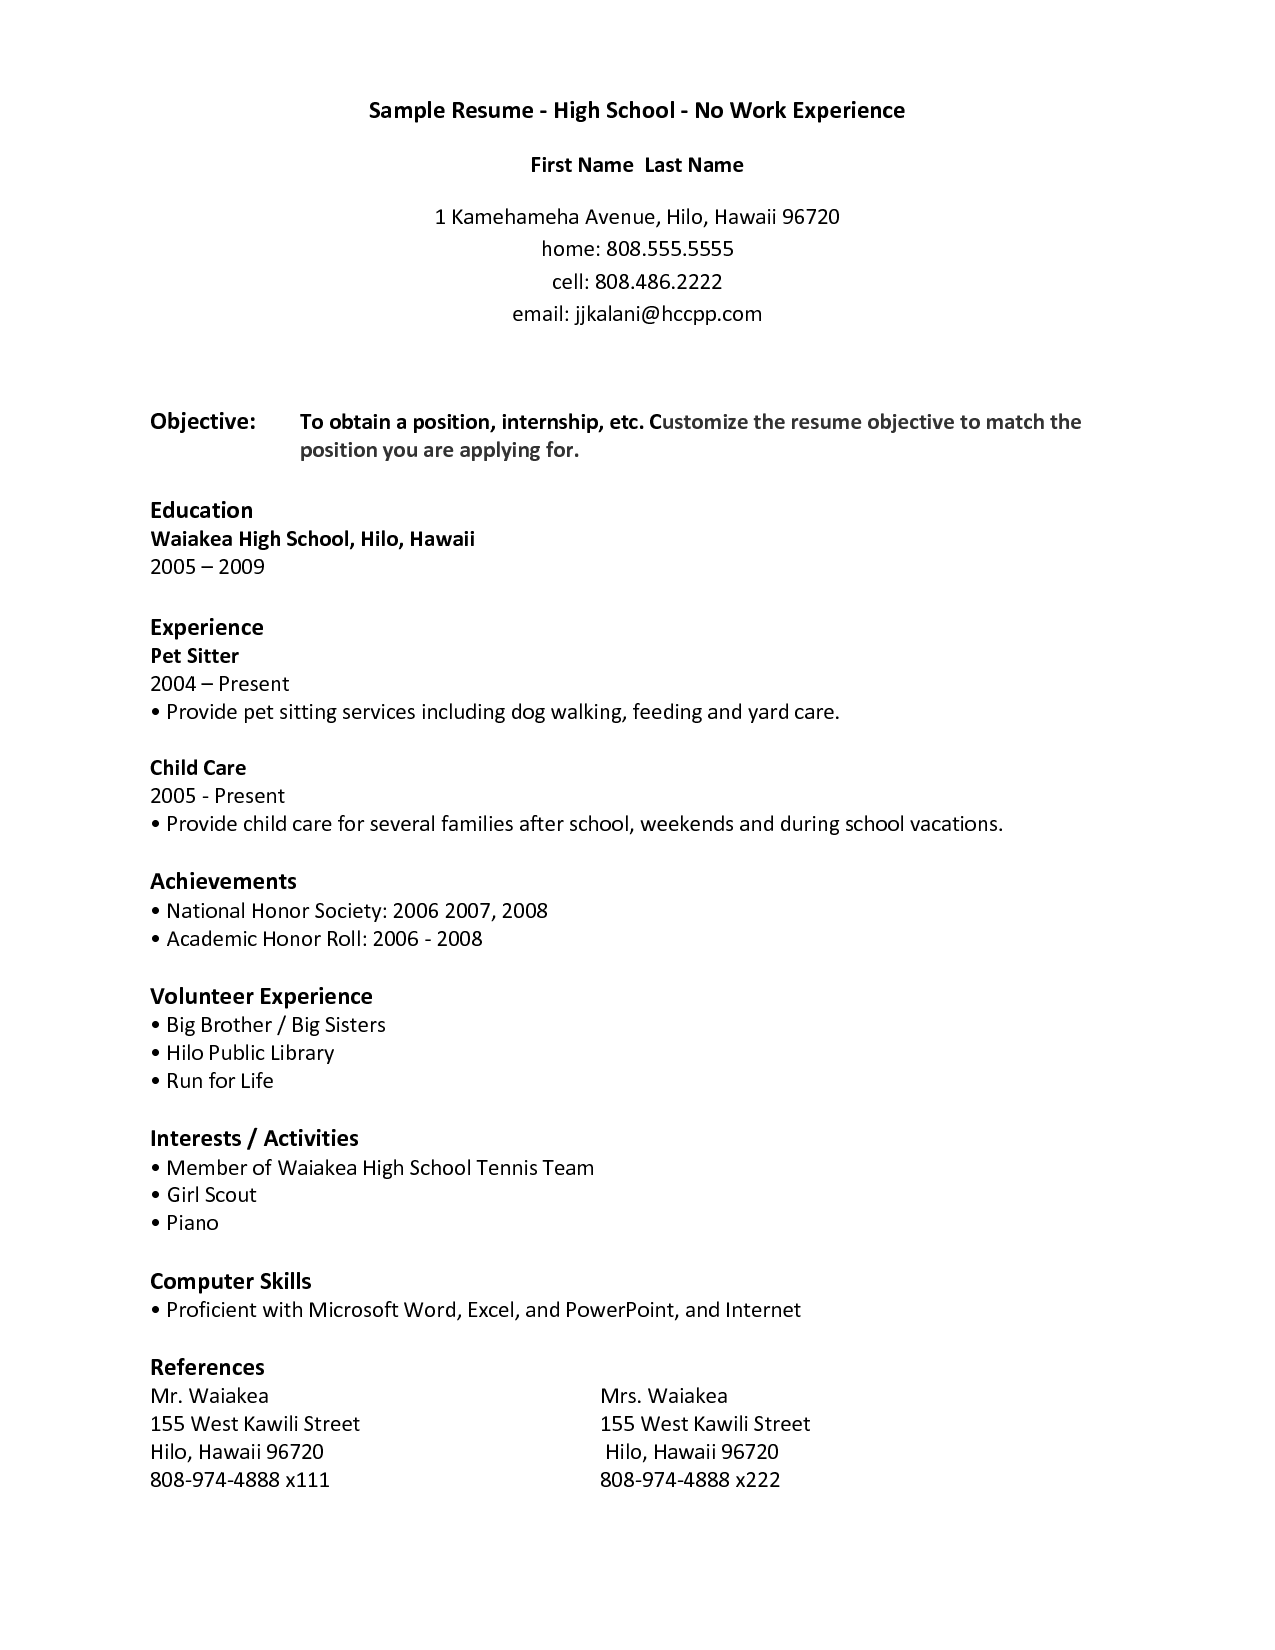 Lovely Model Resumes Resume Cv Cover Letter Functional No Work Experience Template 12751650 Musici First Job Resume Job Resume Examples Student Resume Template